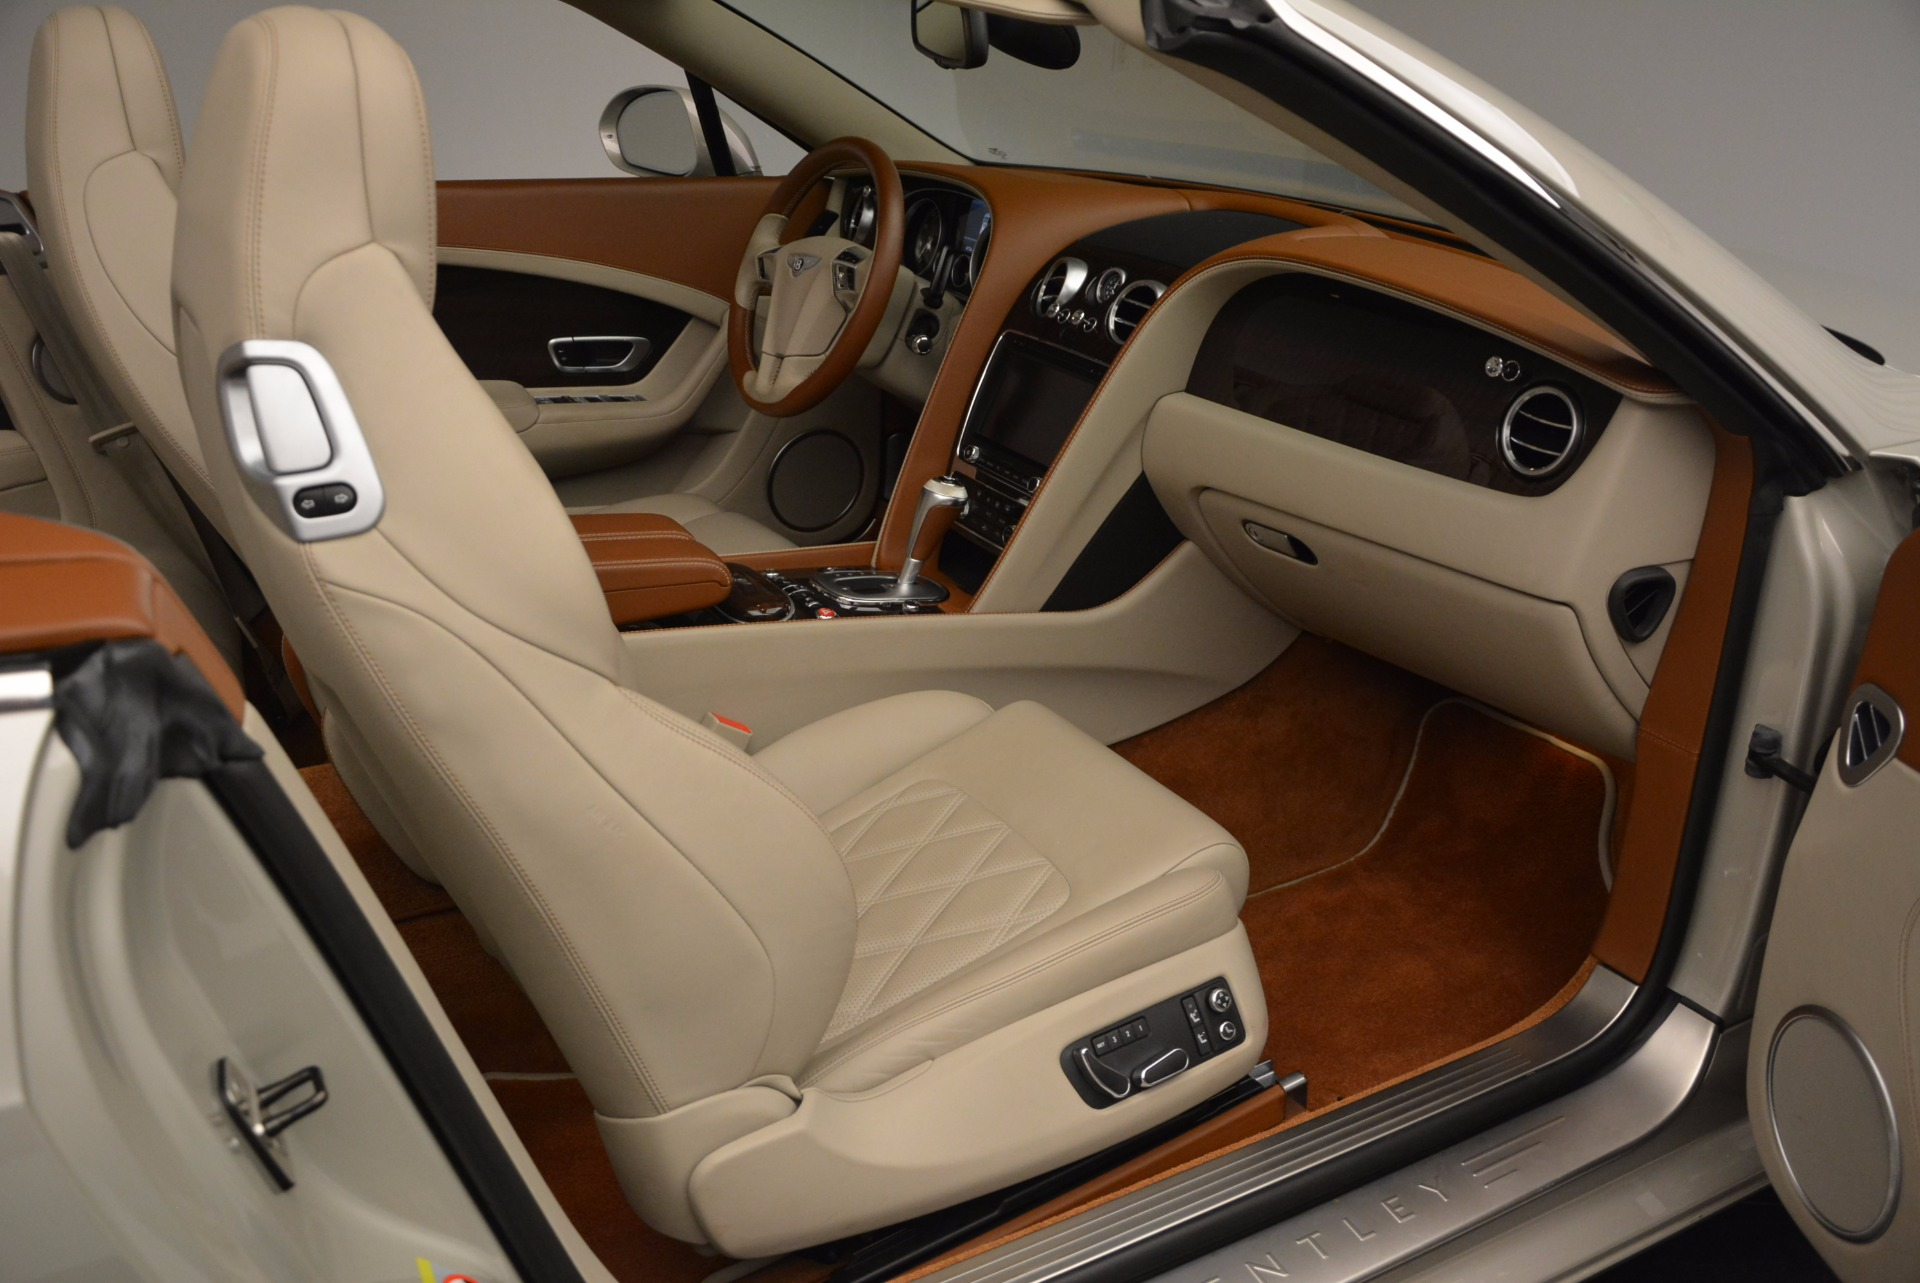 Used 2013 Bentley Continental GTC V8  For Sale In Greenwich, CT. Alfa Romeo of Greenwich, 7108 675_p44